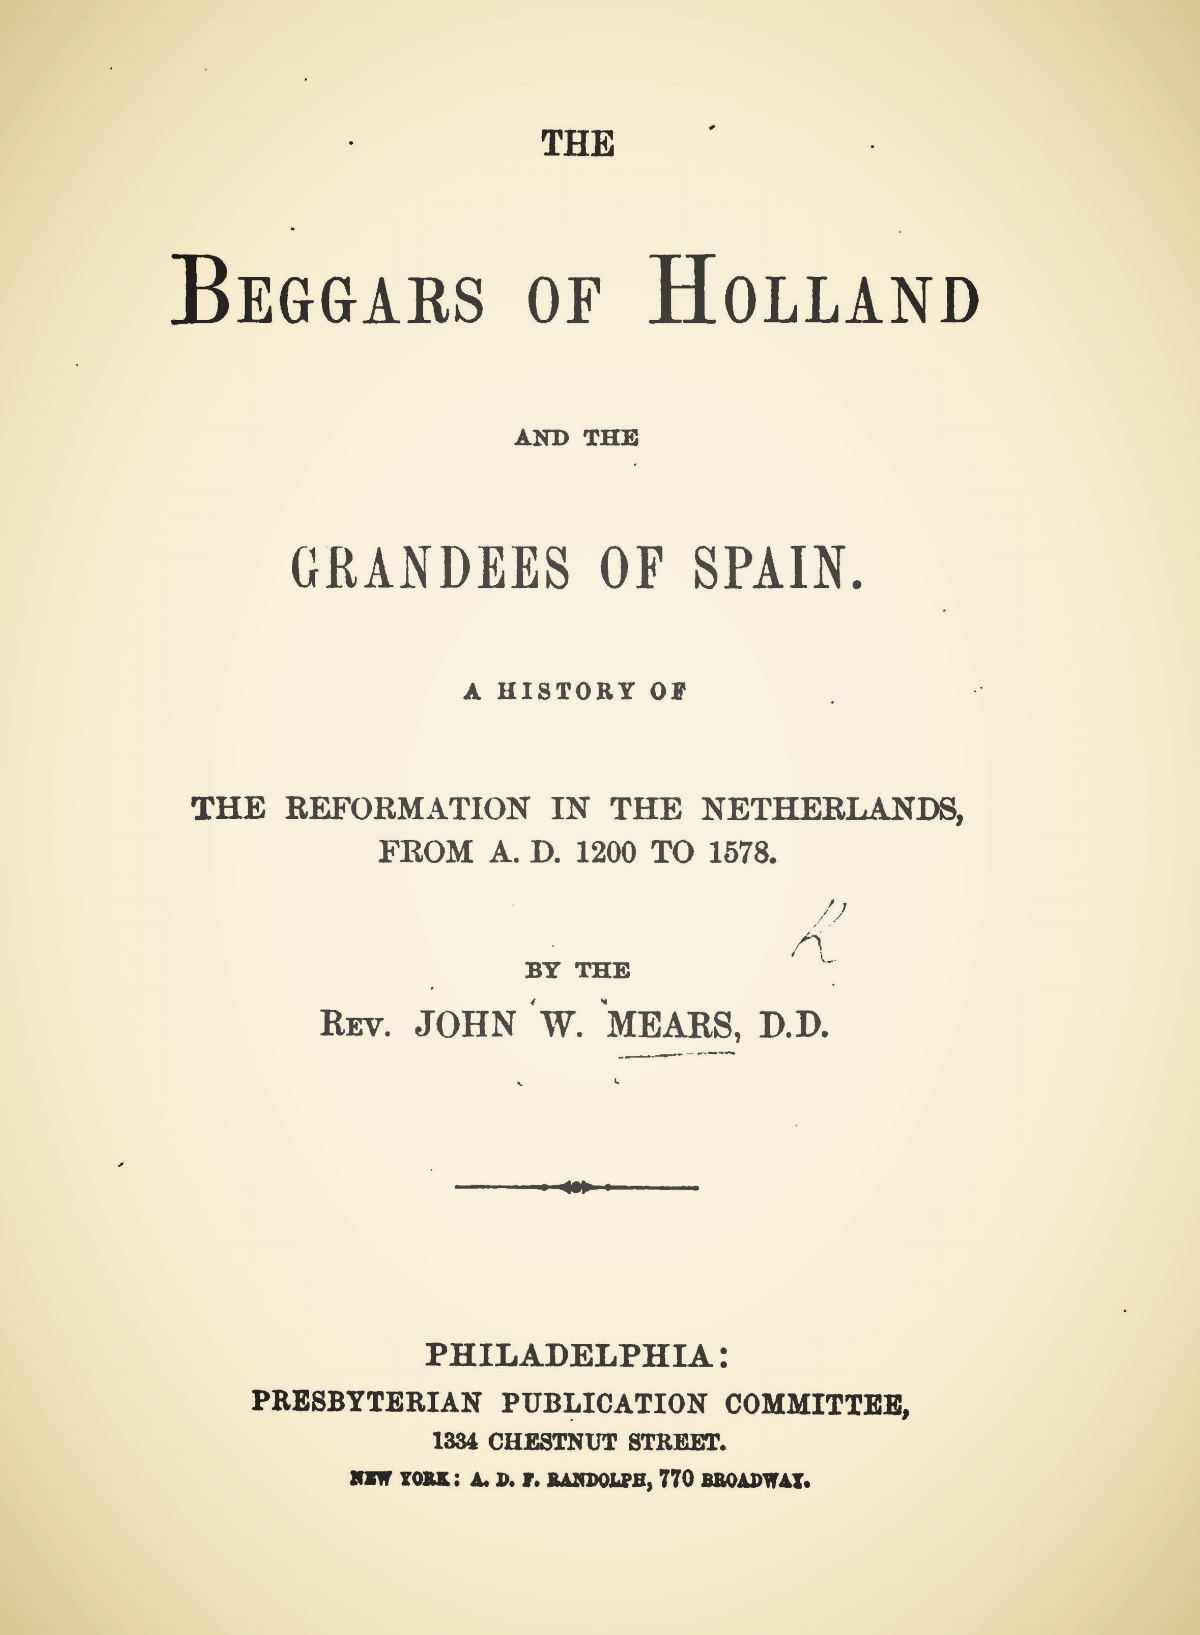 Mears, John William, The Beggars of Holland and the Grandees of Spain Title Page.jpg